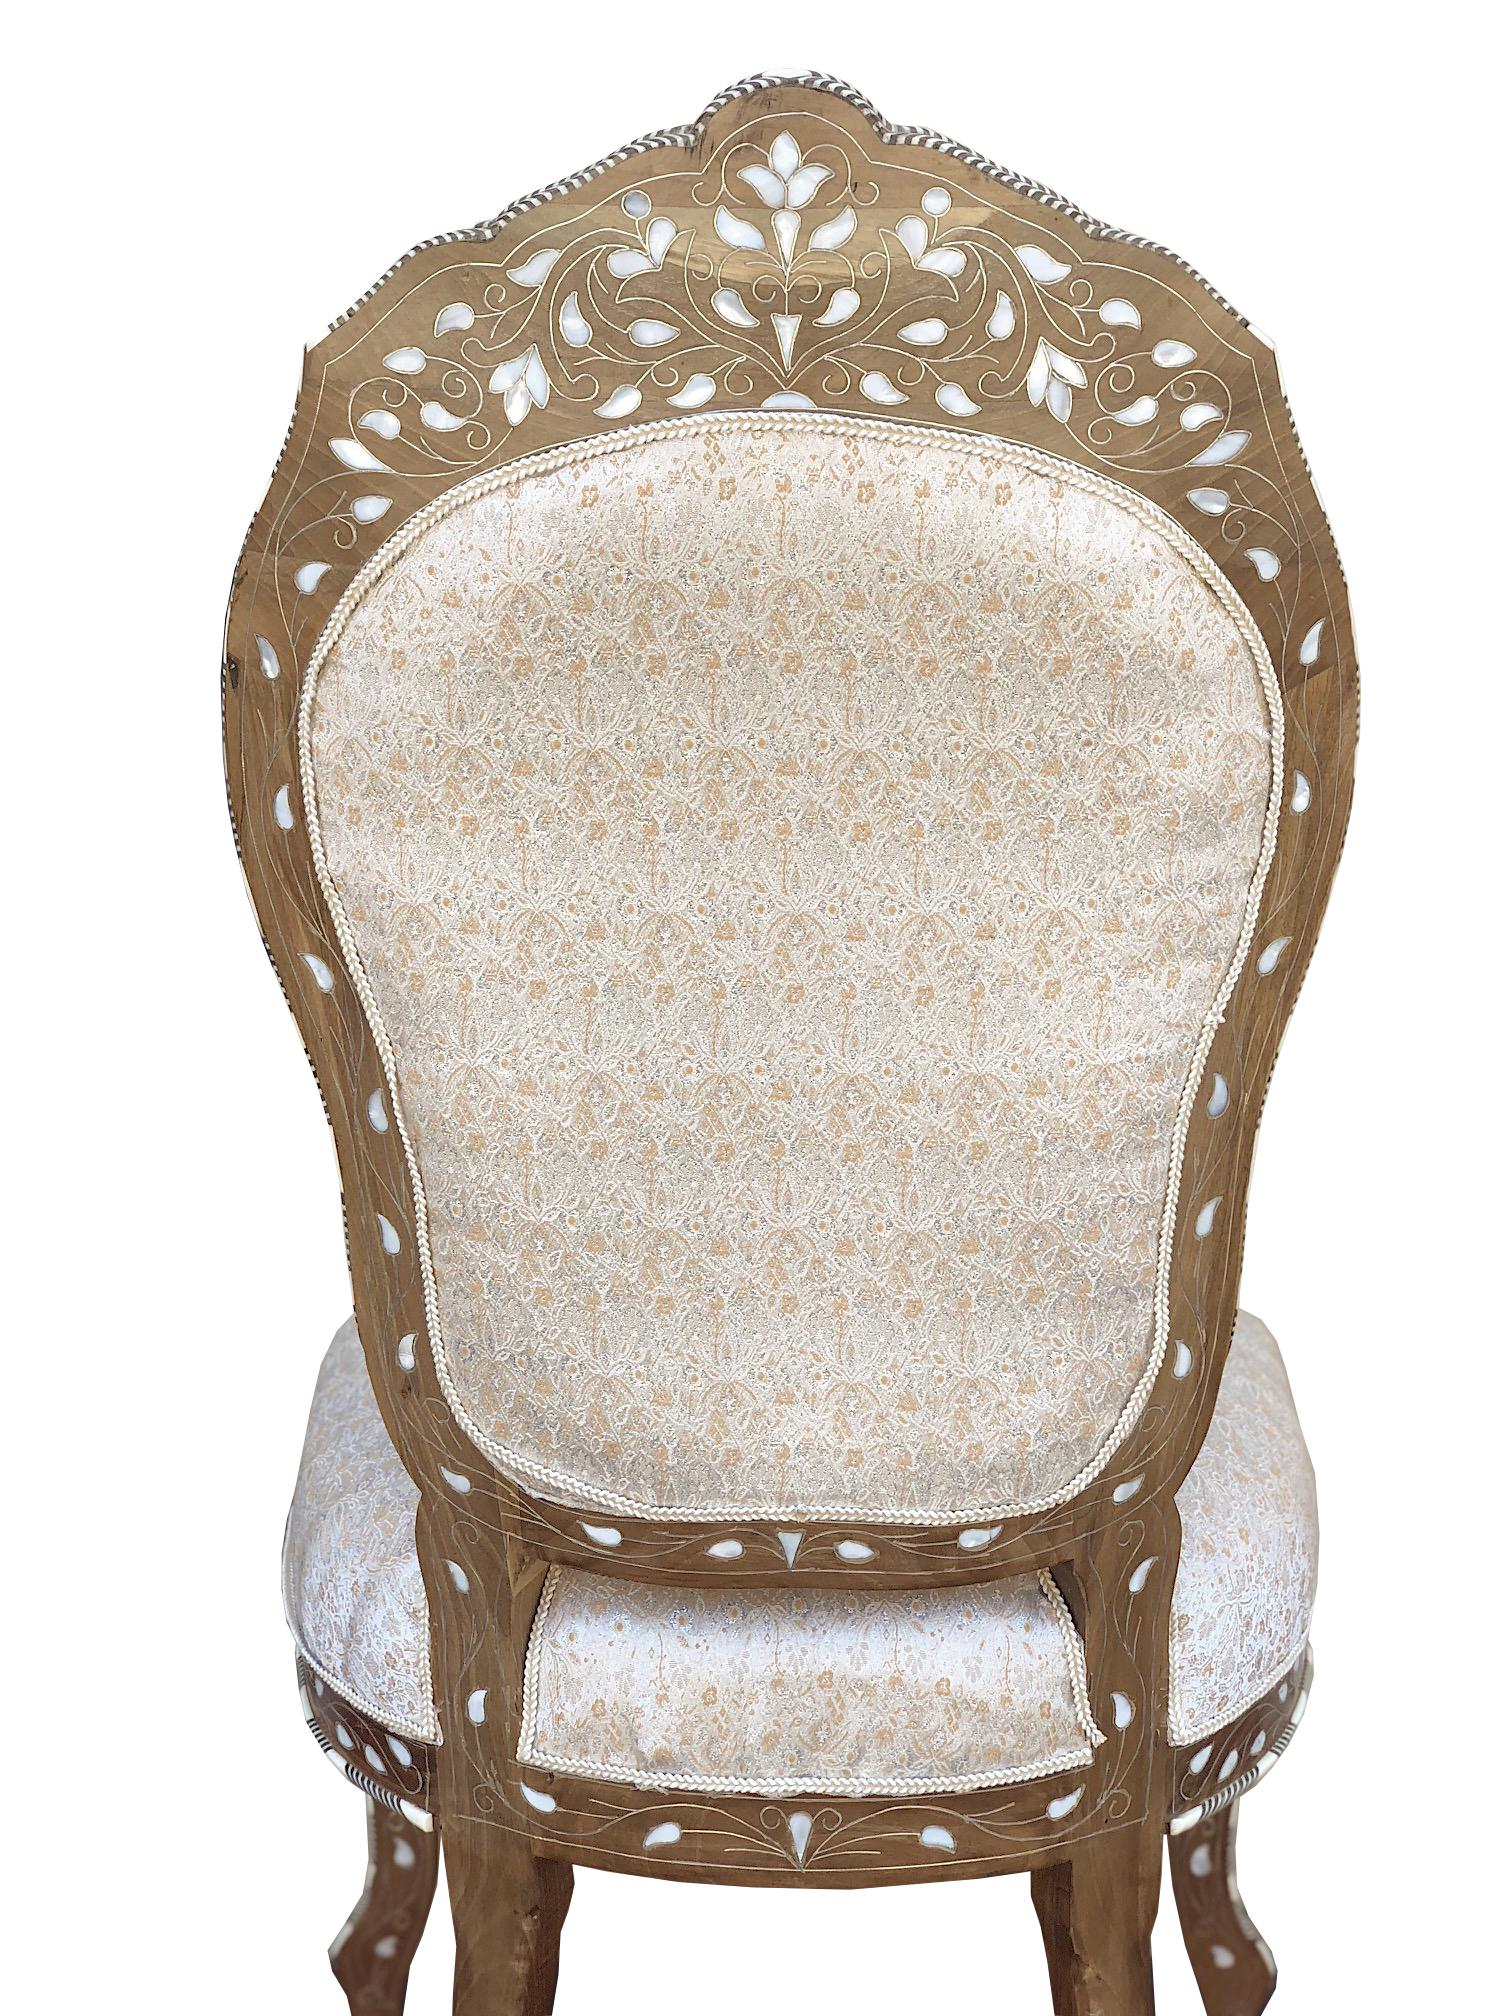 Moroccan/Syrian Mother Of Pearl Inlaid Chair   Image 4 Of 6